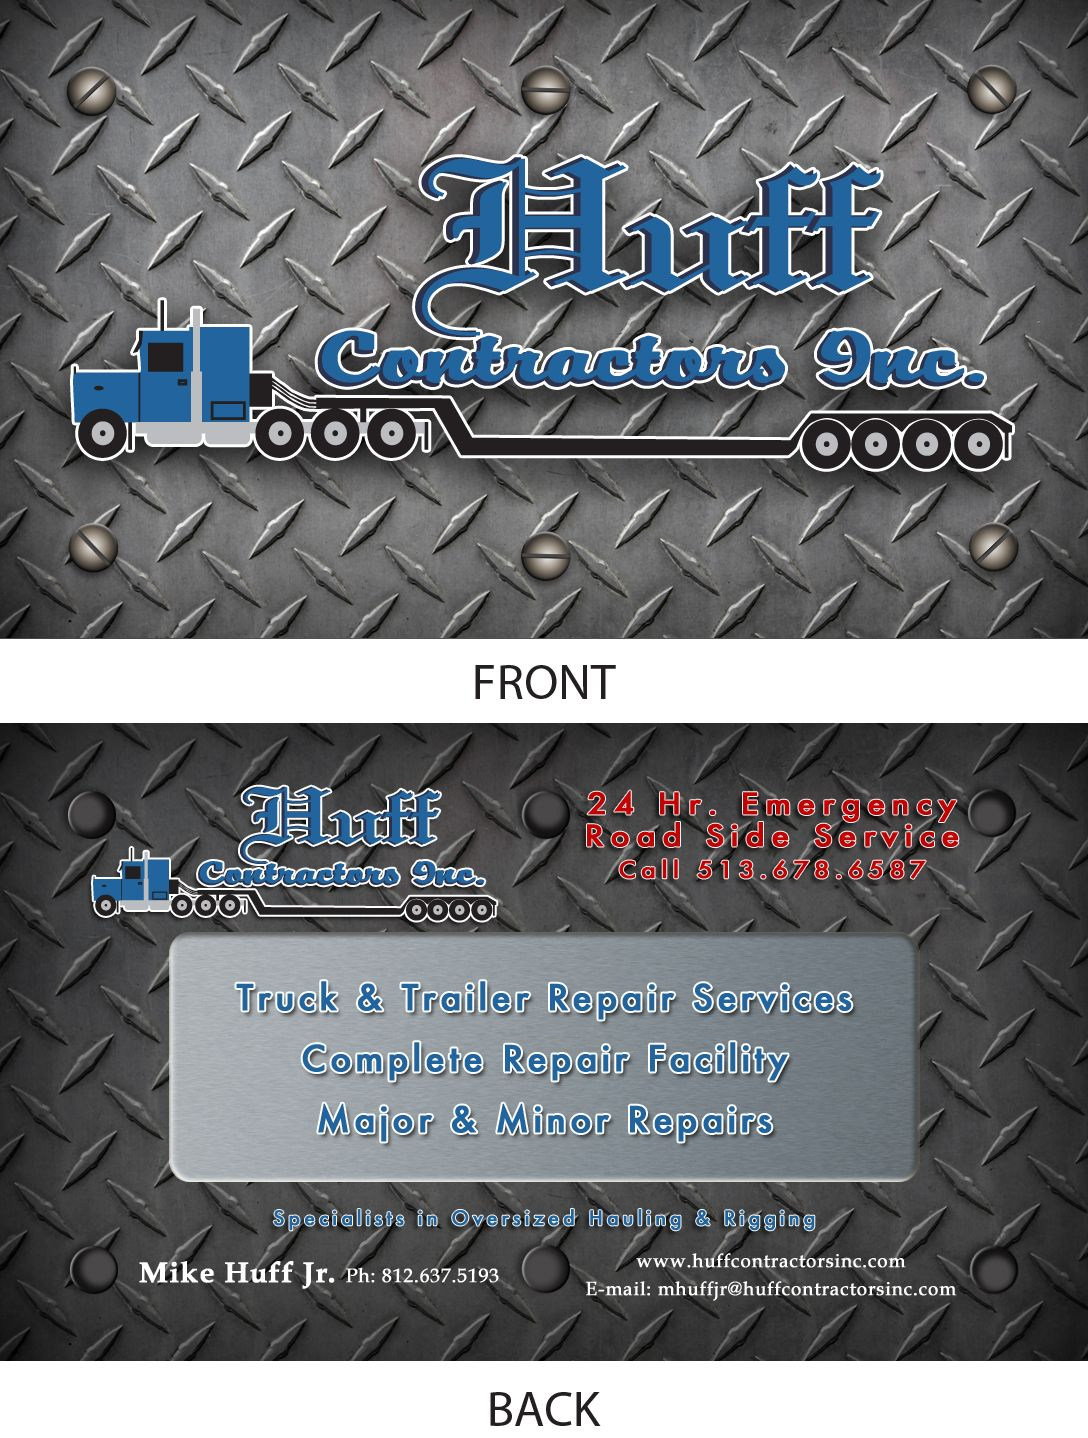 Business Cards. These were designed for a trucking hauling company ...